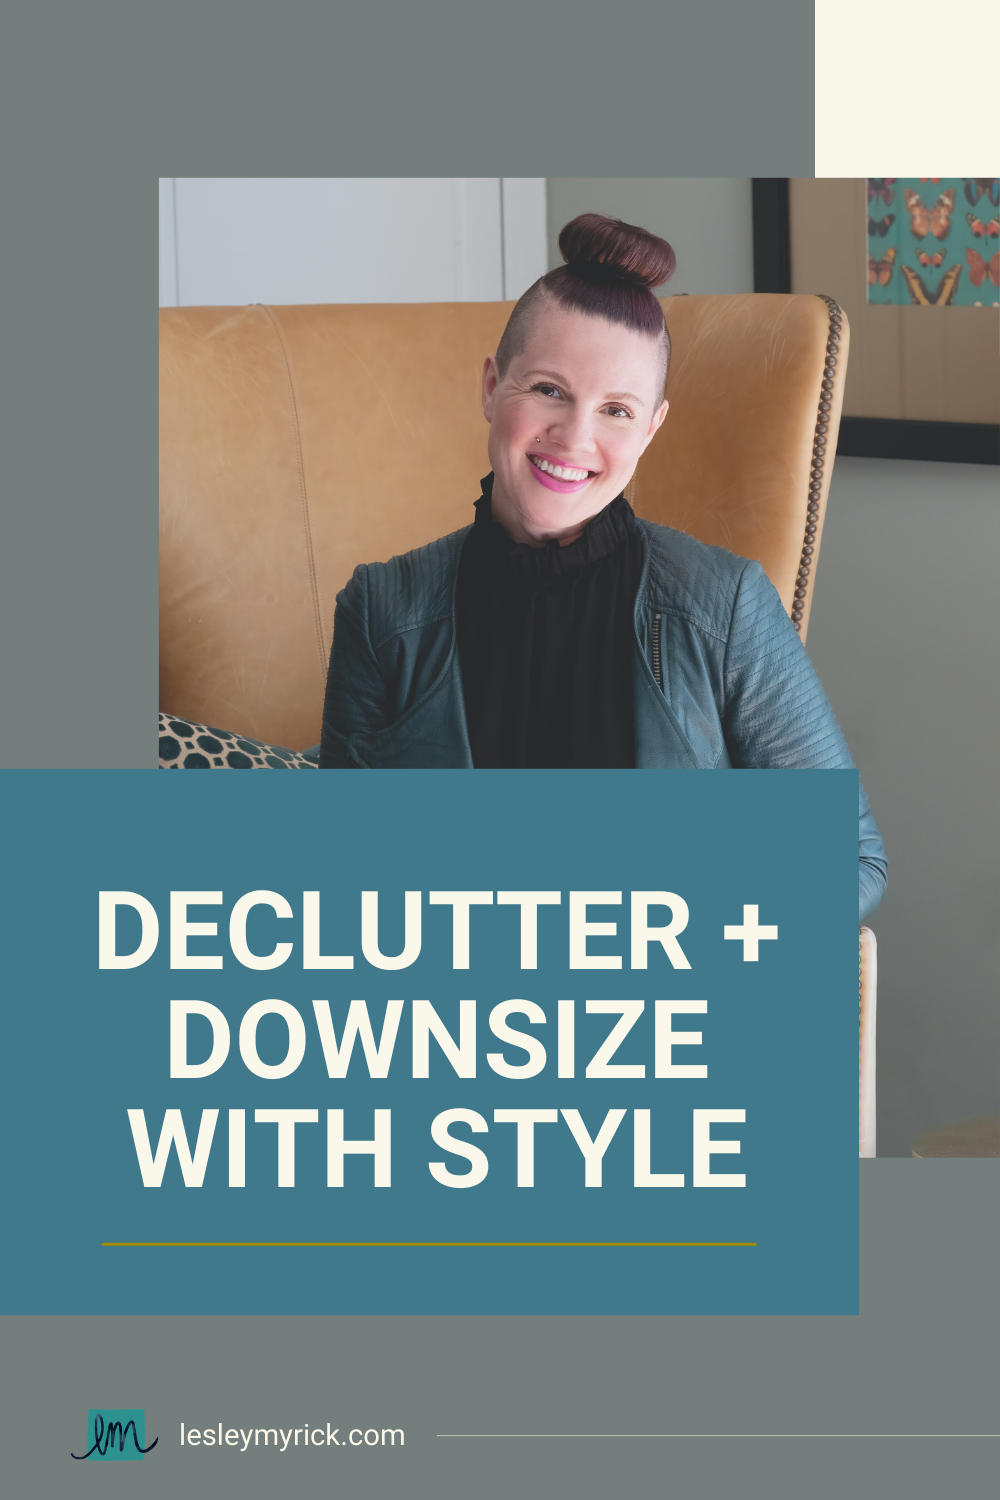 Interior designer Lesley Myrick offers tips on how to declutter and downsize - with style.